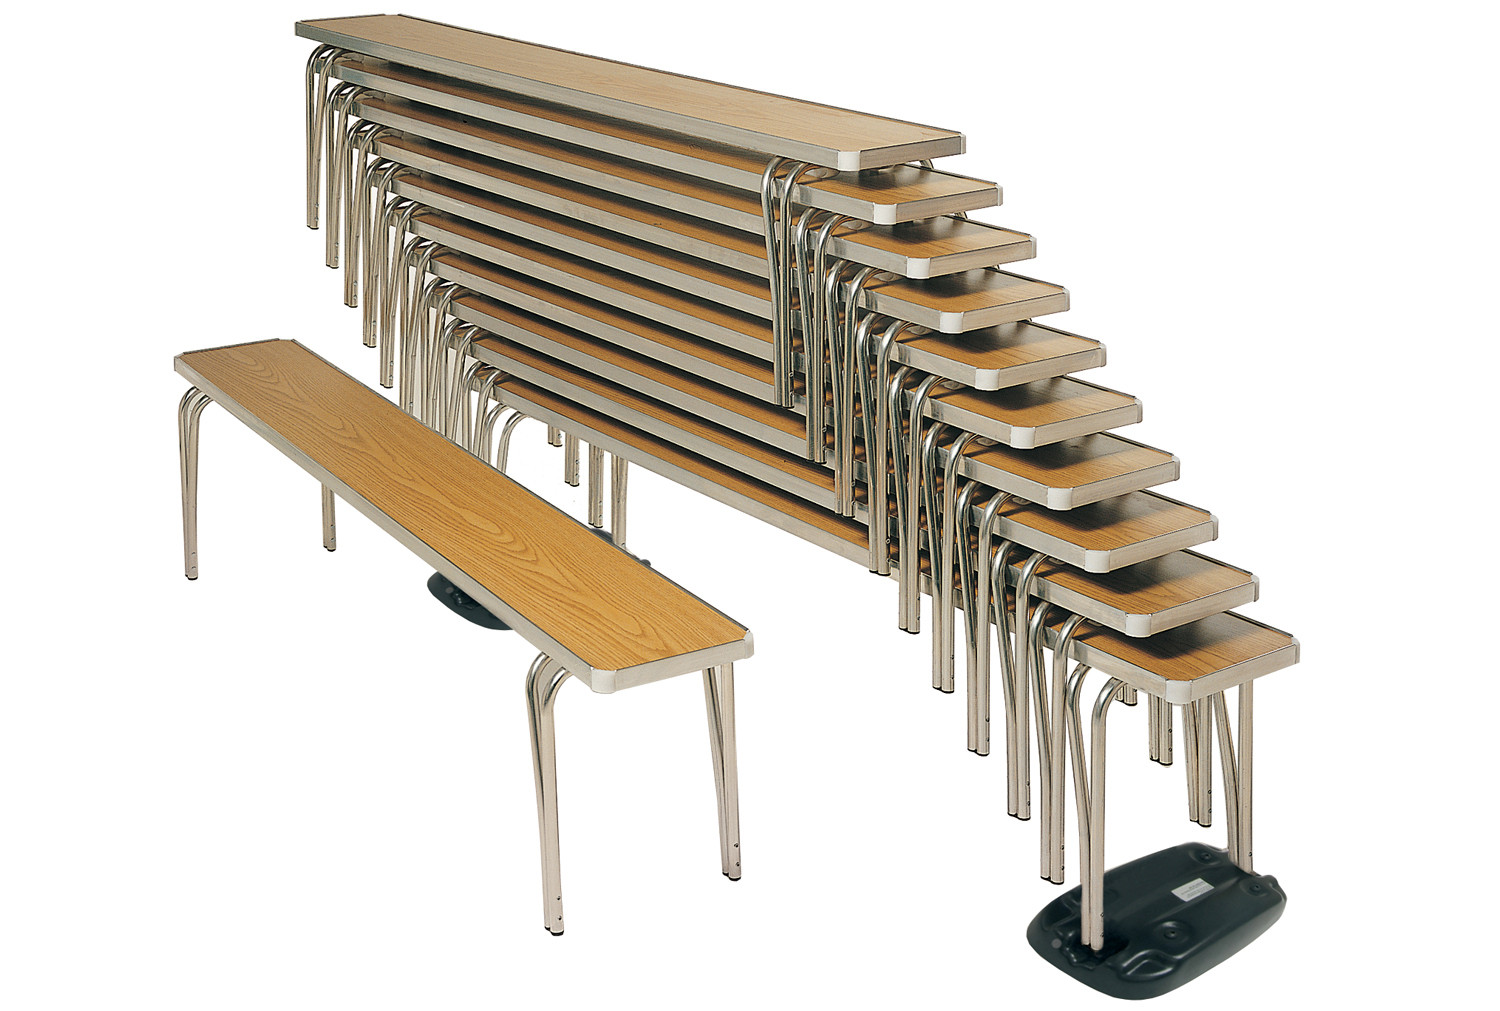 Gopak economy stacking benches